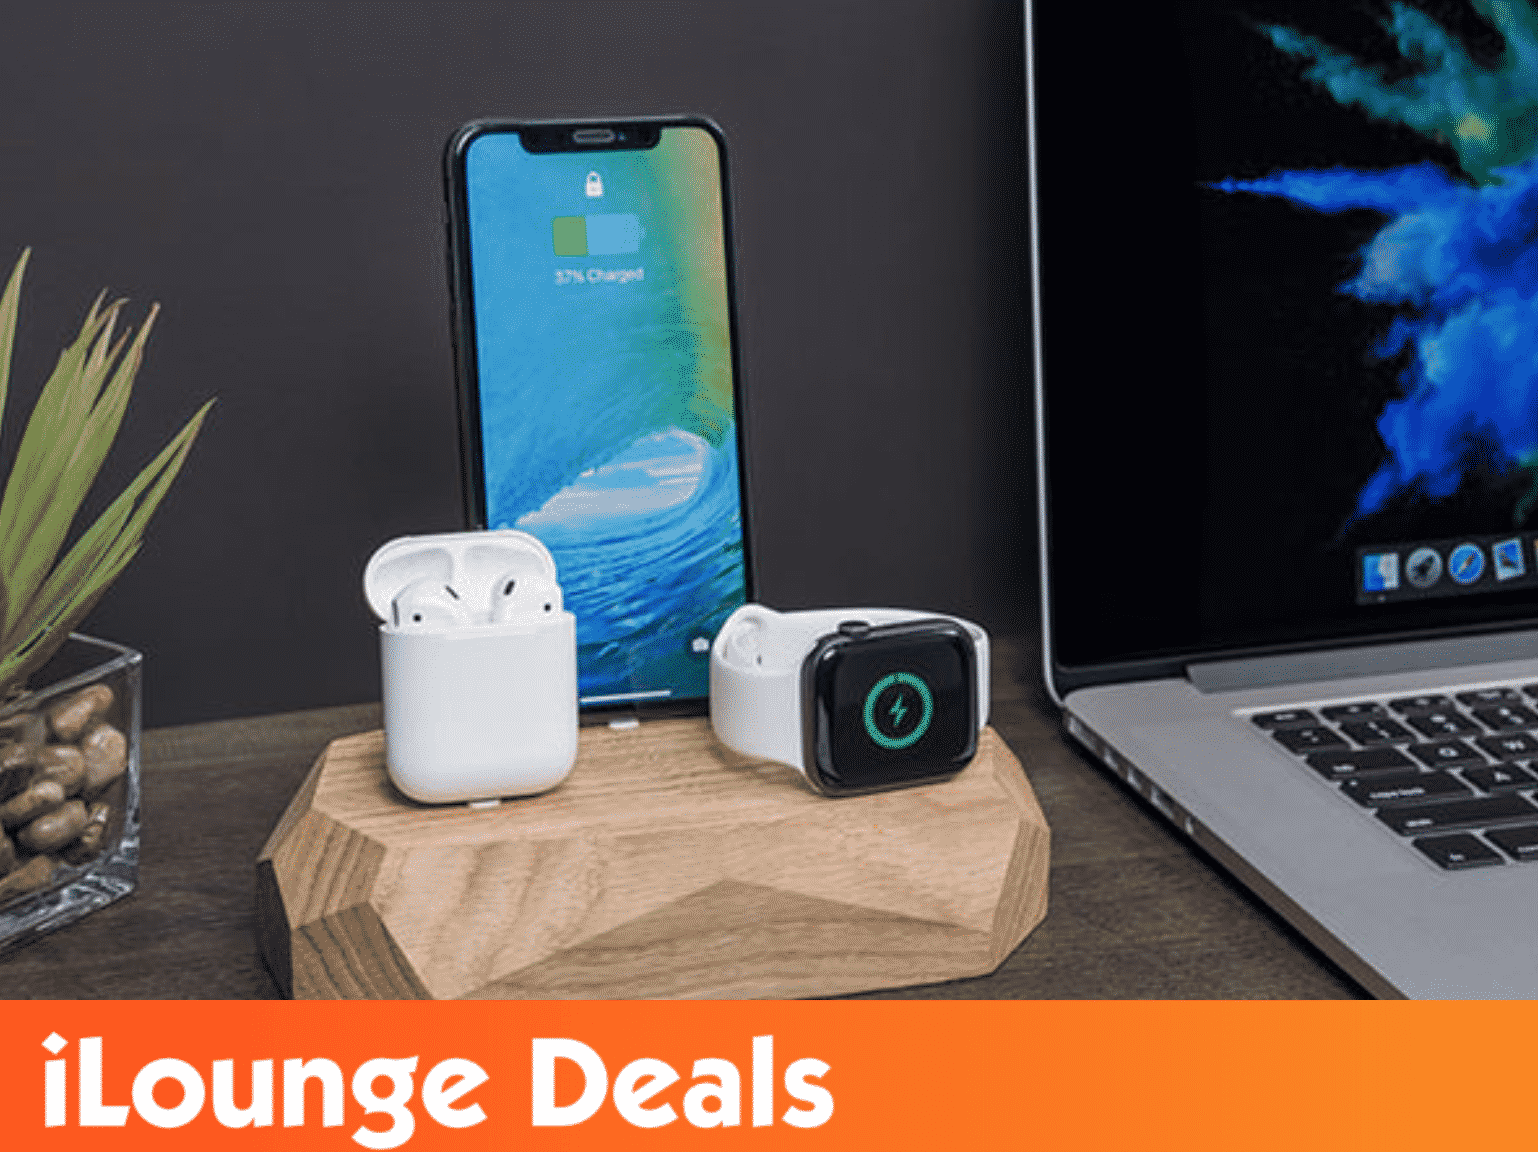 Triple Dock 3-in-1 Apple Device Charging Station